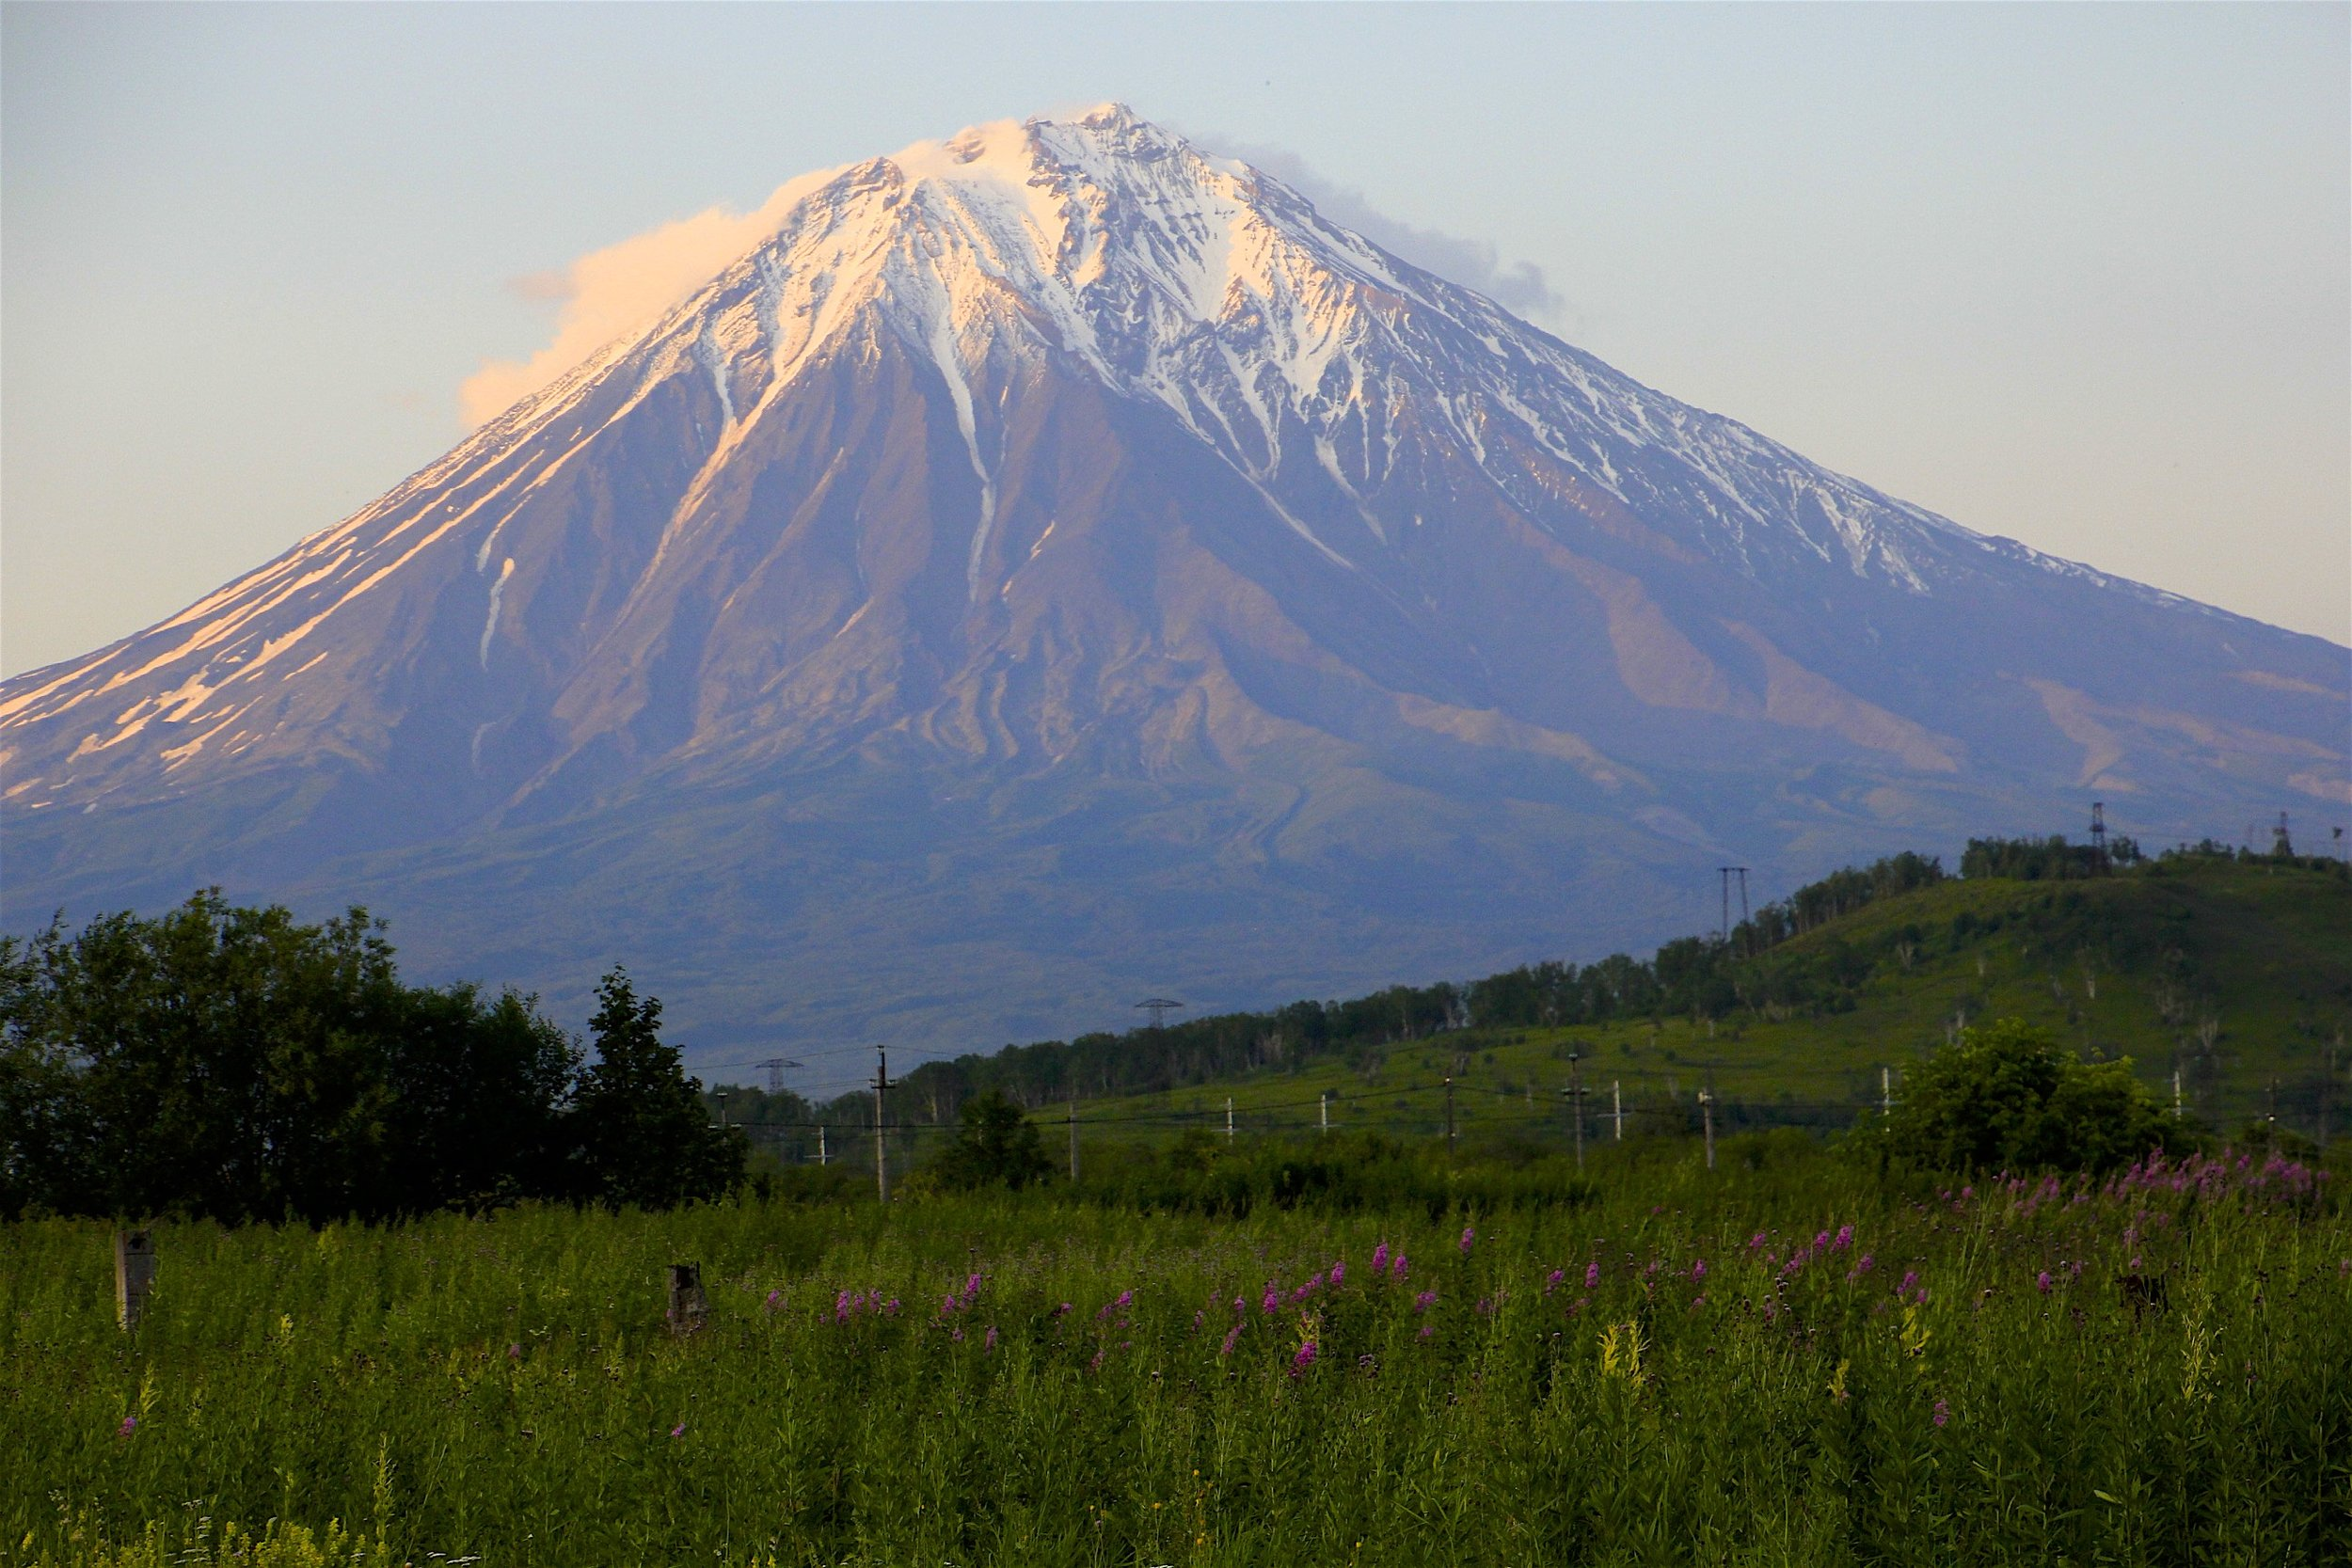 The Koryaksky Volcano near Petropawlowsk Kamchatsky (PK). It is 3,456m high. It belongs to the Avachinskaya group of Volcanoes. It had a small eruption of ash in 2009 forcing landing aircraft to change course. the upper part has a 35 degree slope and some exposed rocky sections.